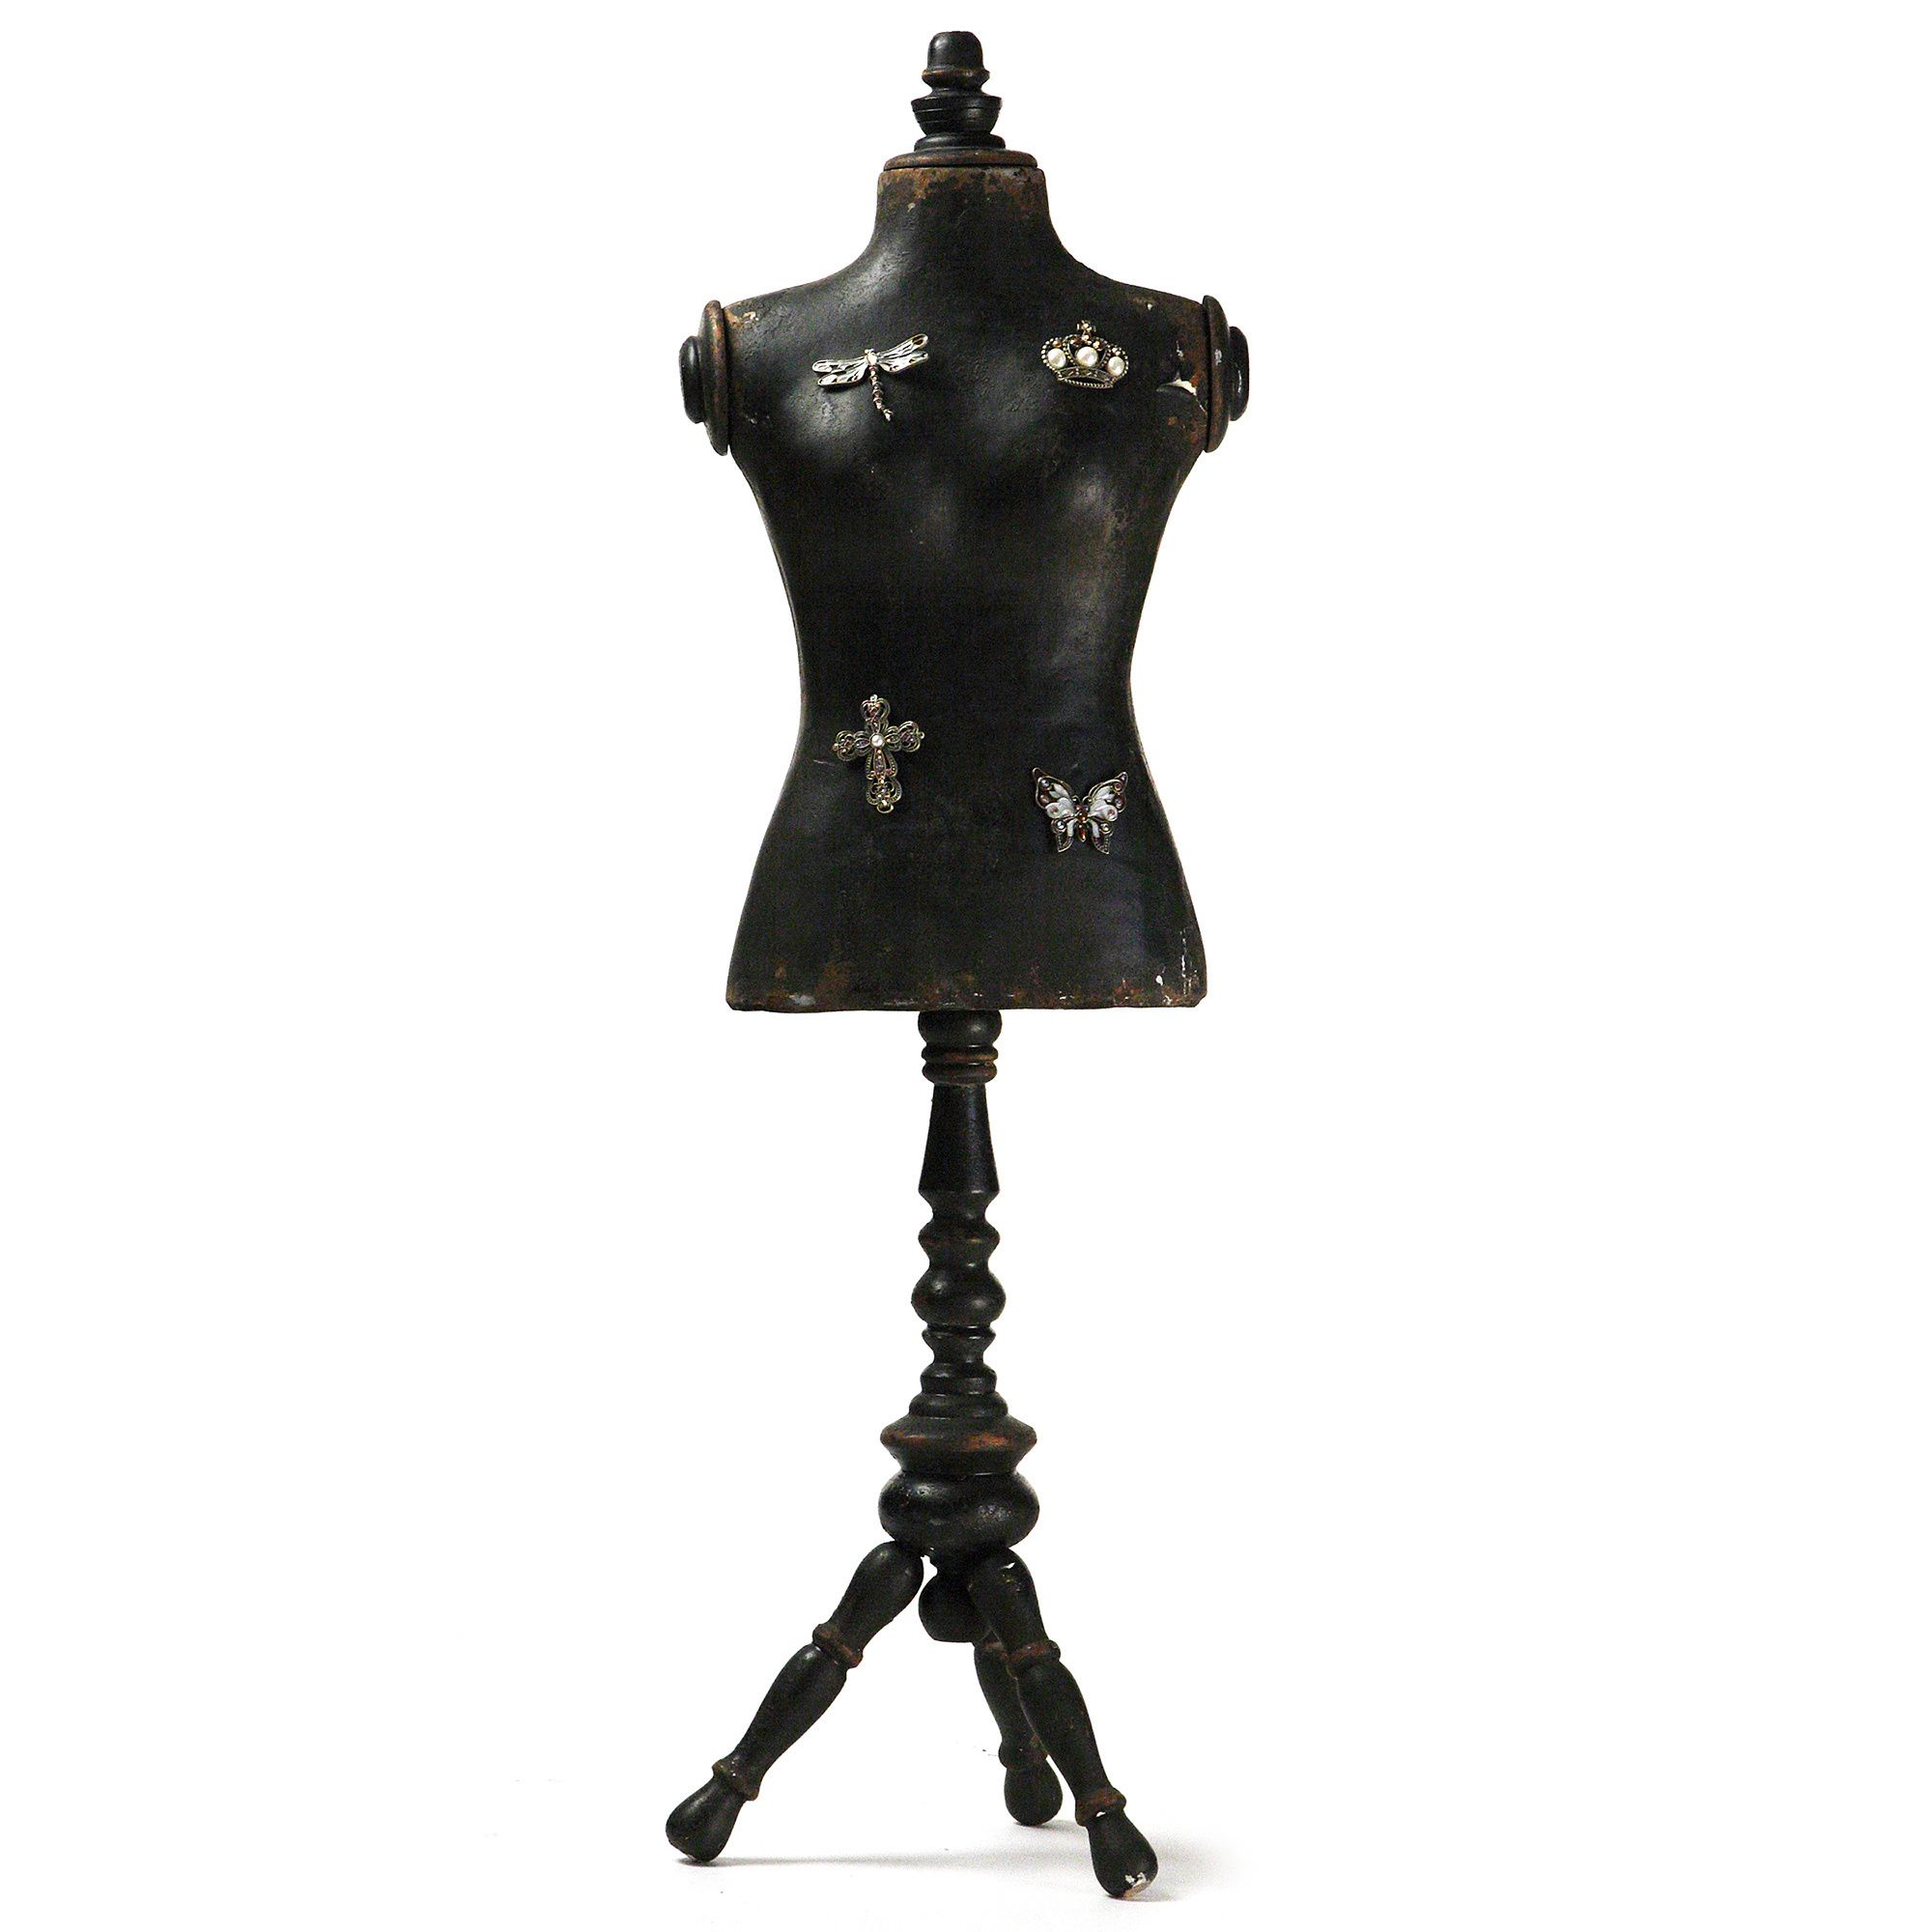 Show off your creative side by using this decorative dress form to